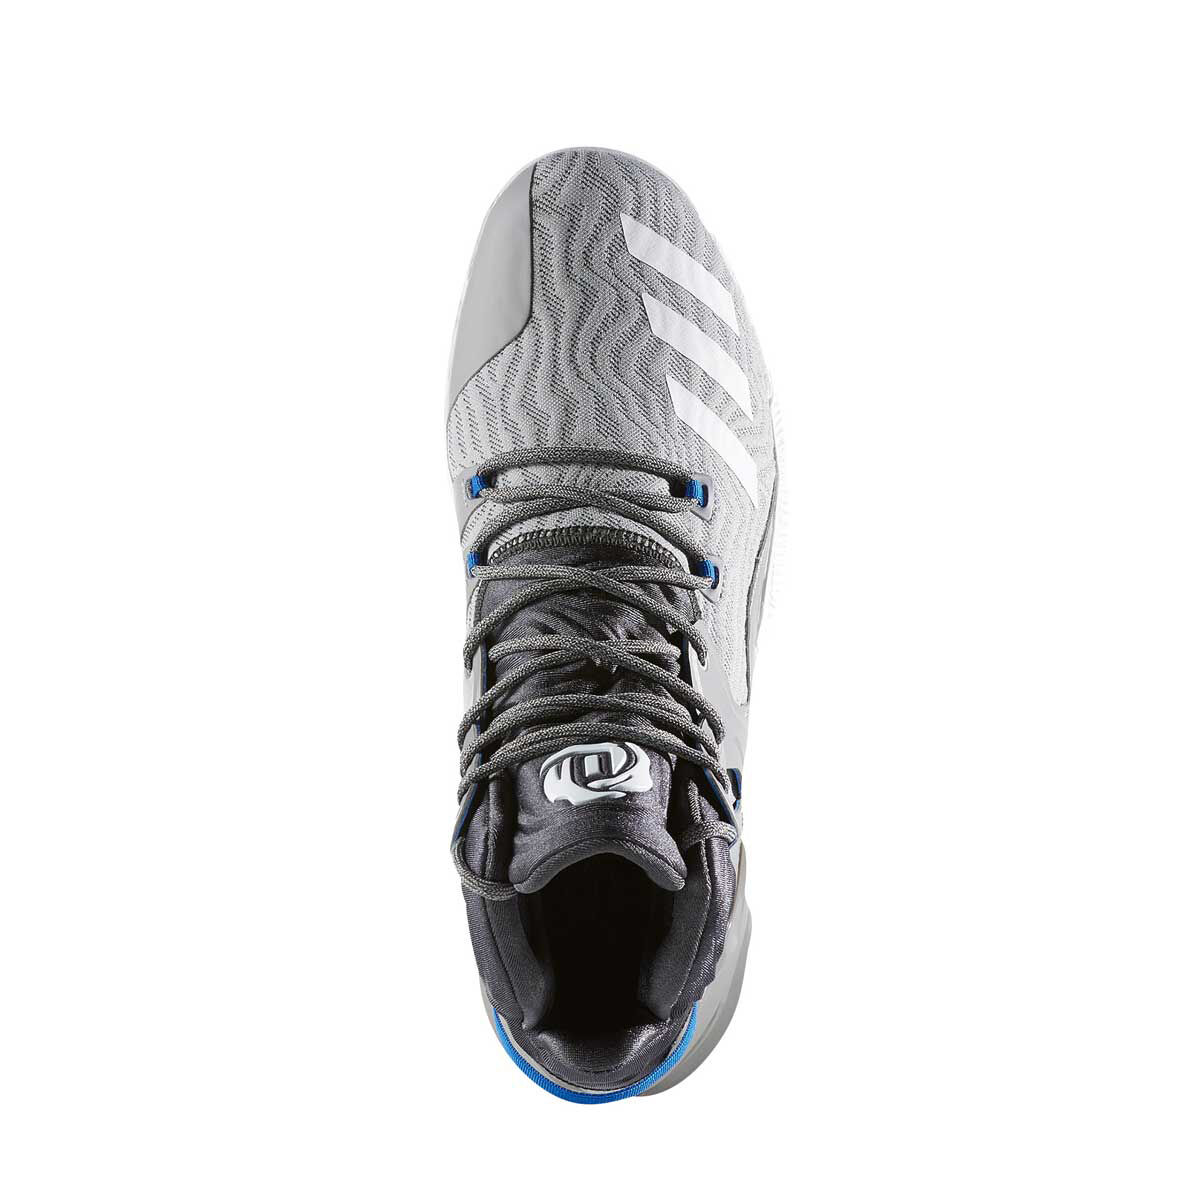 new concept 7113f 0cfd2 ... discount adidas d rose 7 mens basketball shoes grey white us 8 grey  white 5d3a6 bb27b